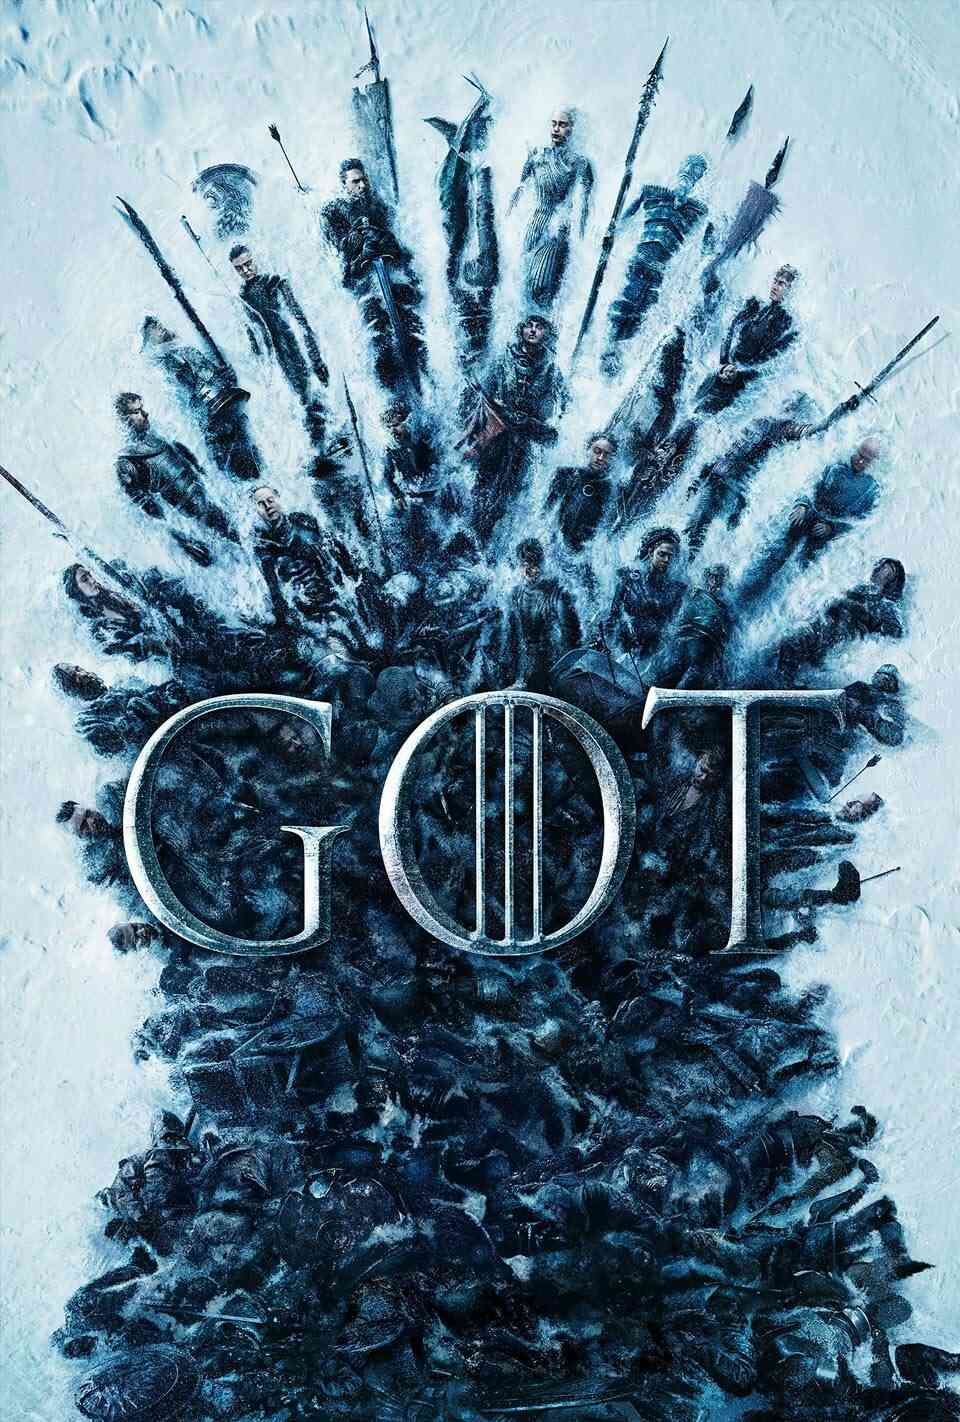 Game of Thrones: 806: The Iron Throne Poster